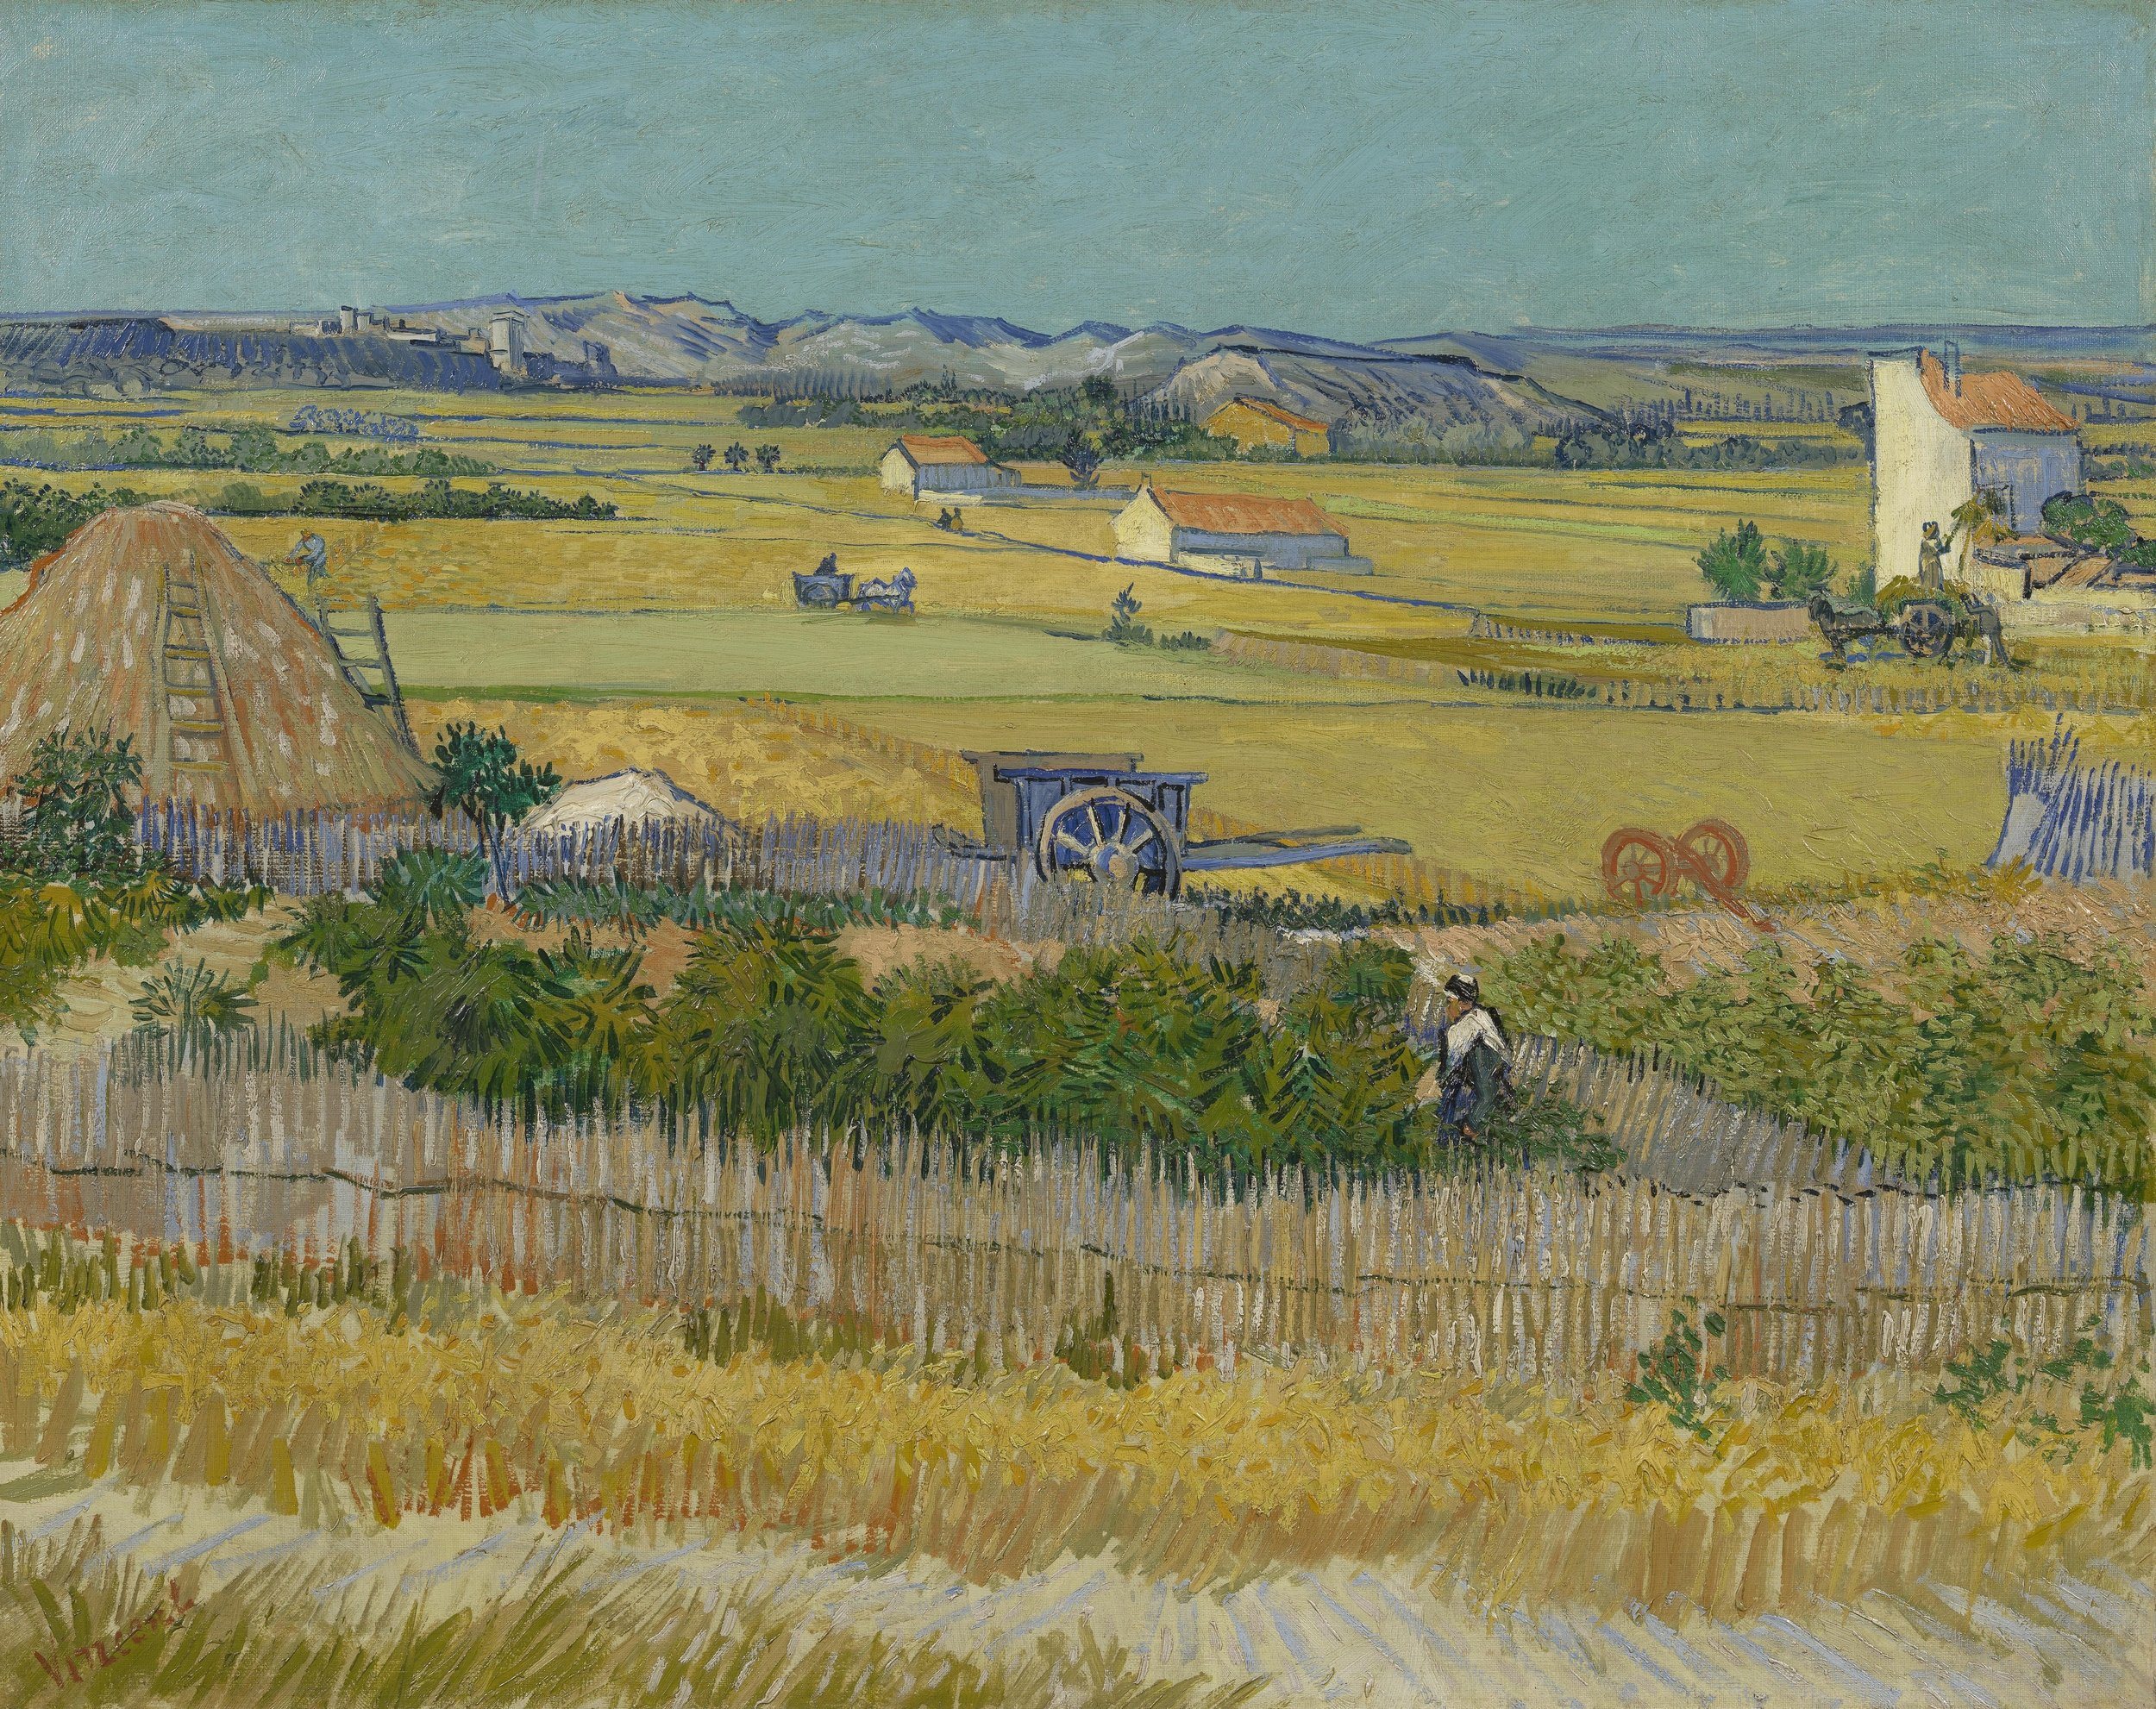 Vincent van Gogh: The Harvest, 1888